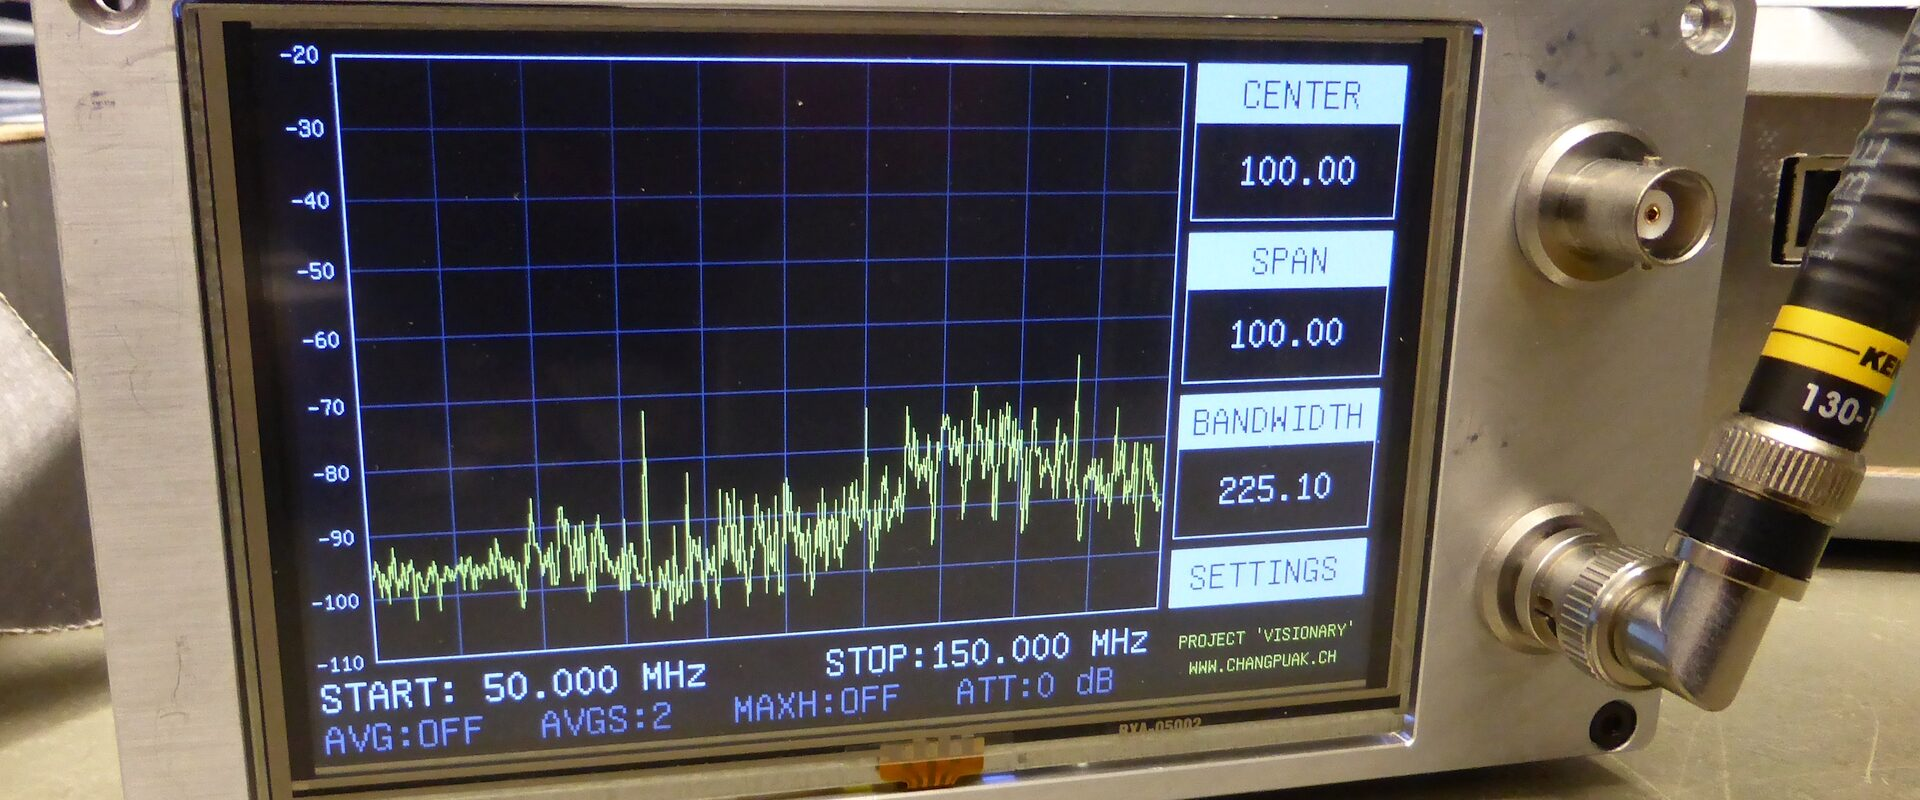 Permalink to: Radio Frequency Scans